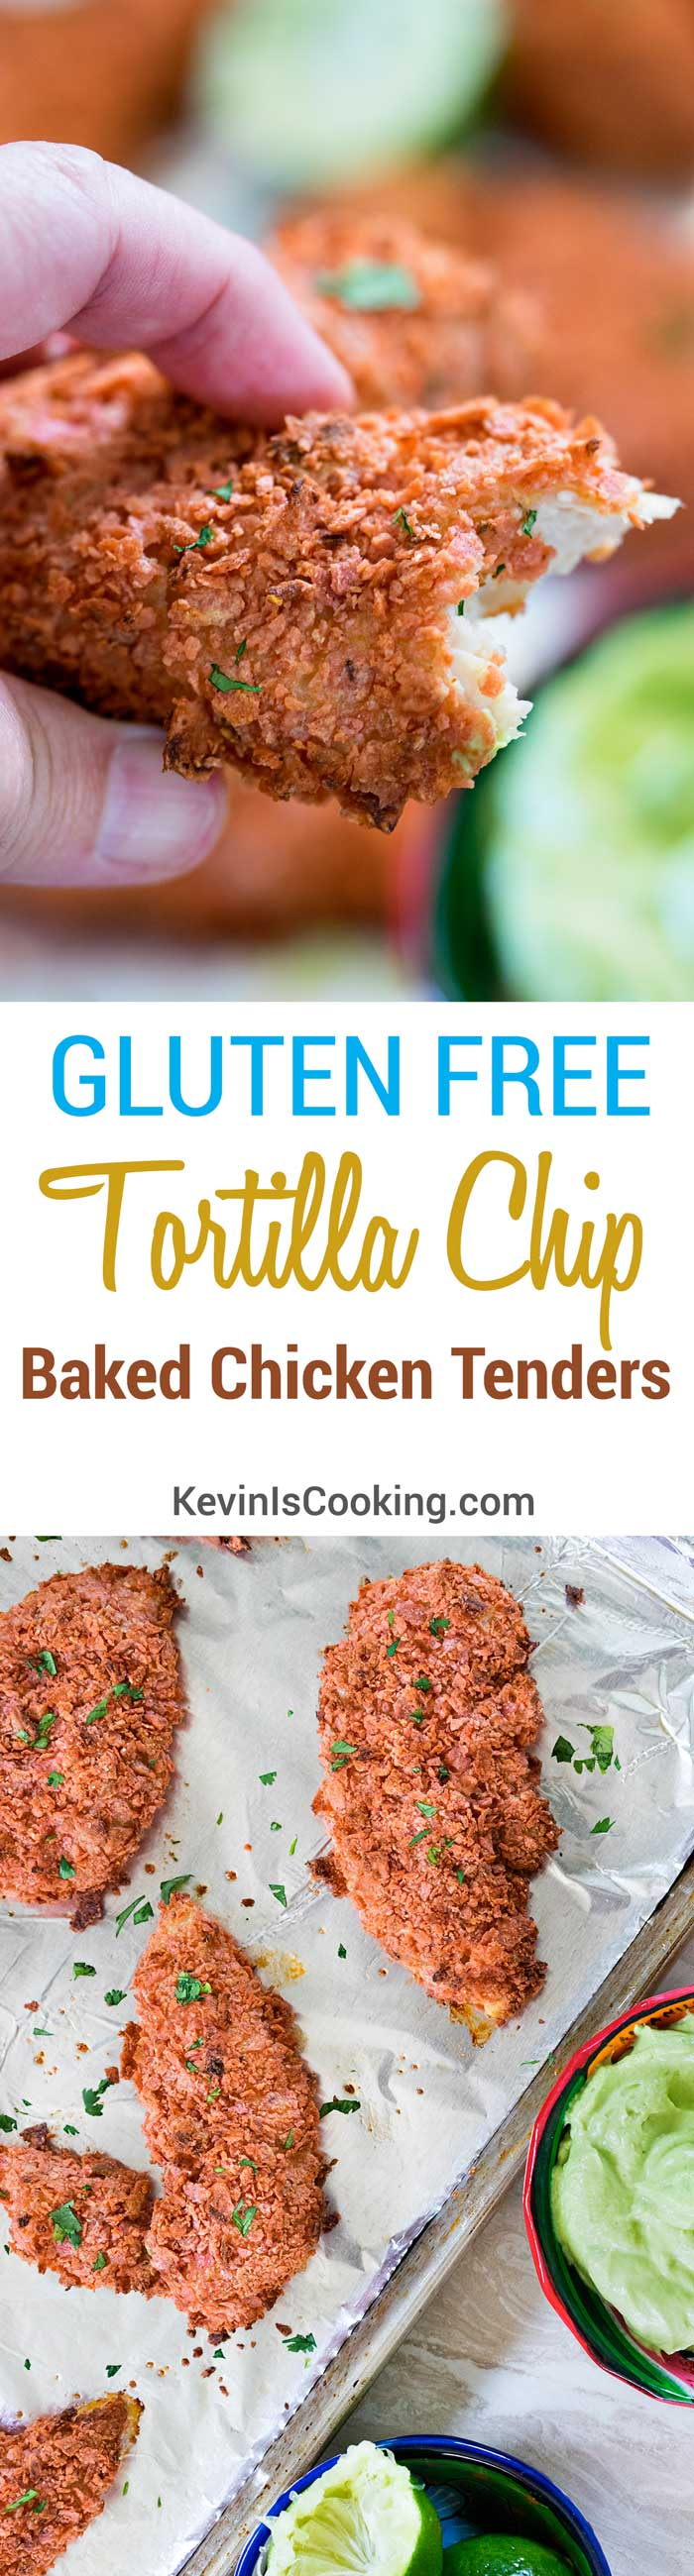 Gluten Free Tortilla Chip Baked Chicken Tenders with Avocado Sauce. www.keviniscooking.com